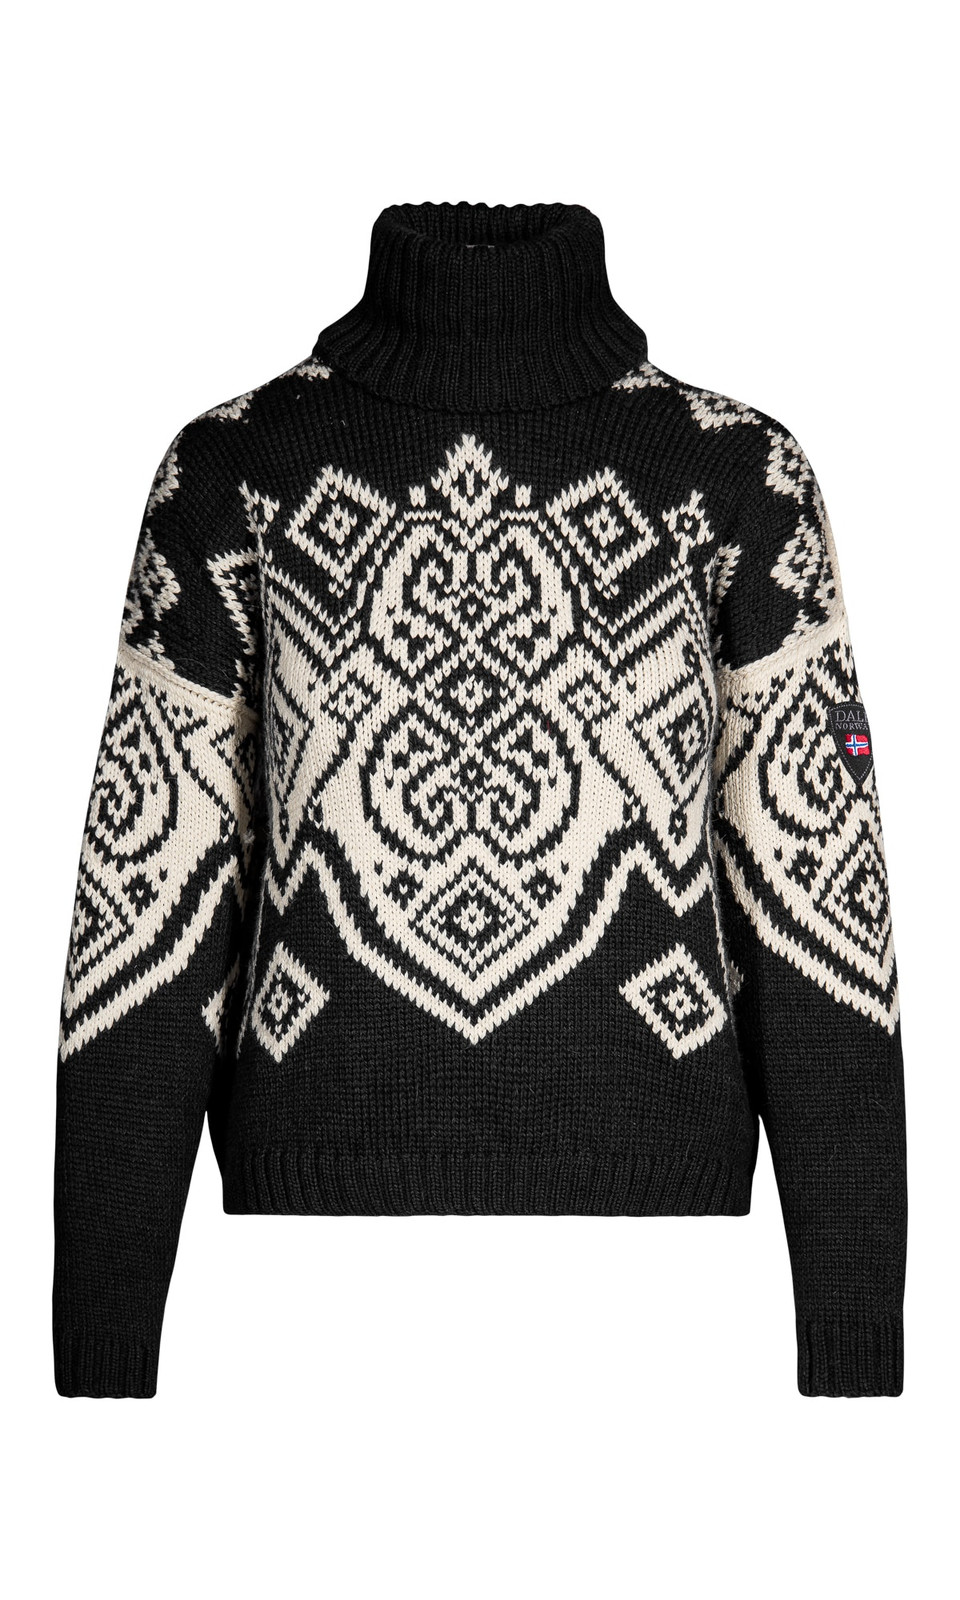 Dale of Norway Falun Sweater, Ladies - Black/Off White, 94041-F (94041-F)